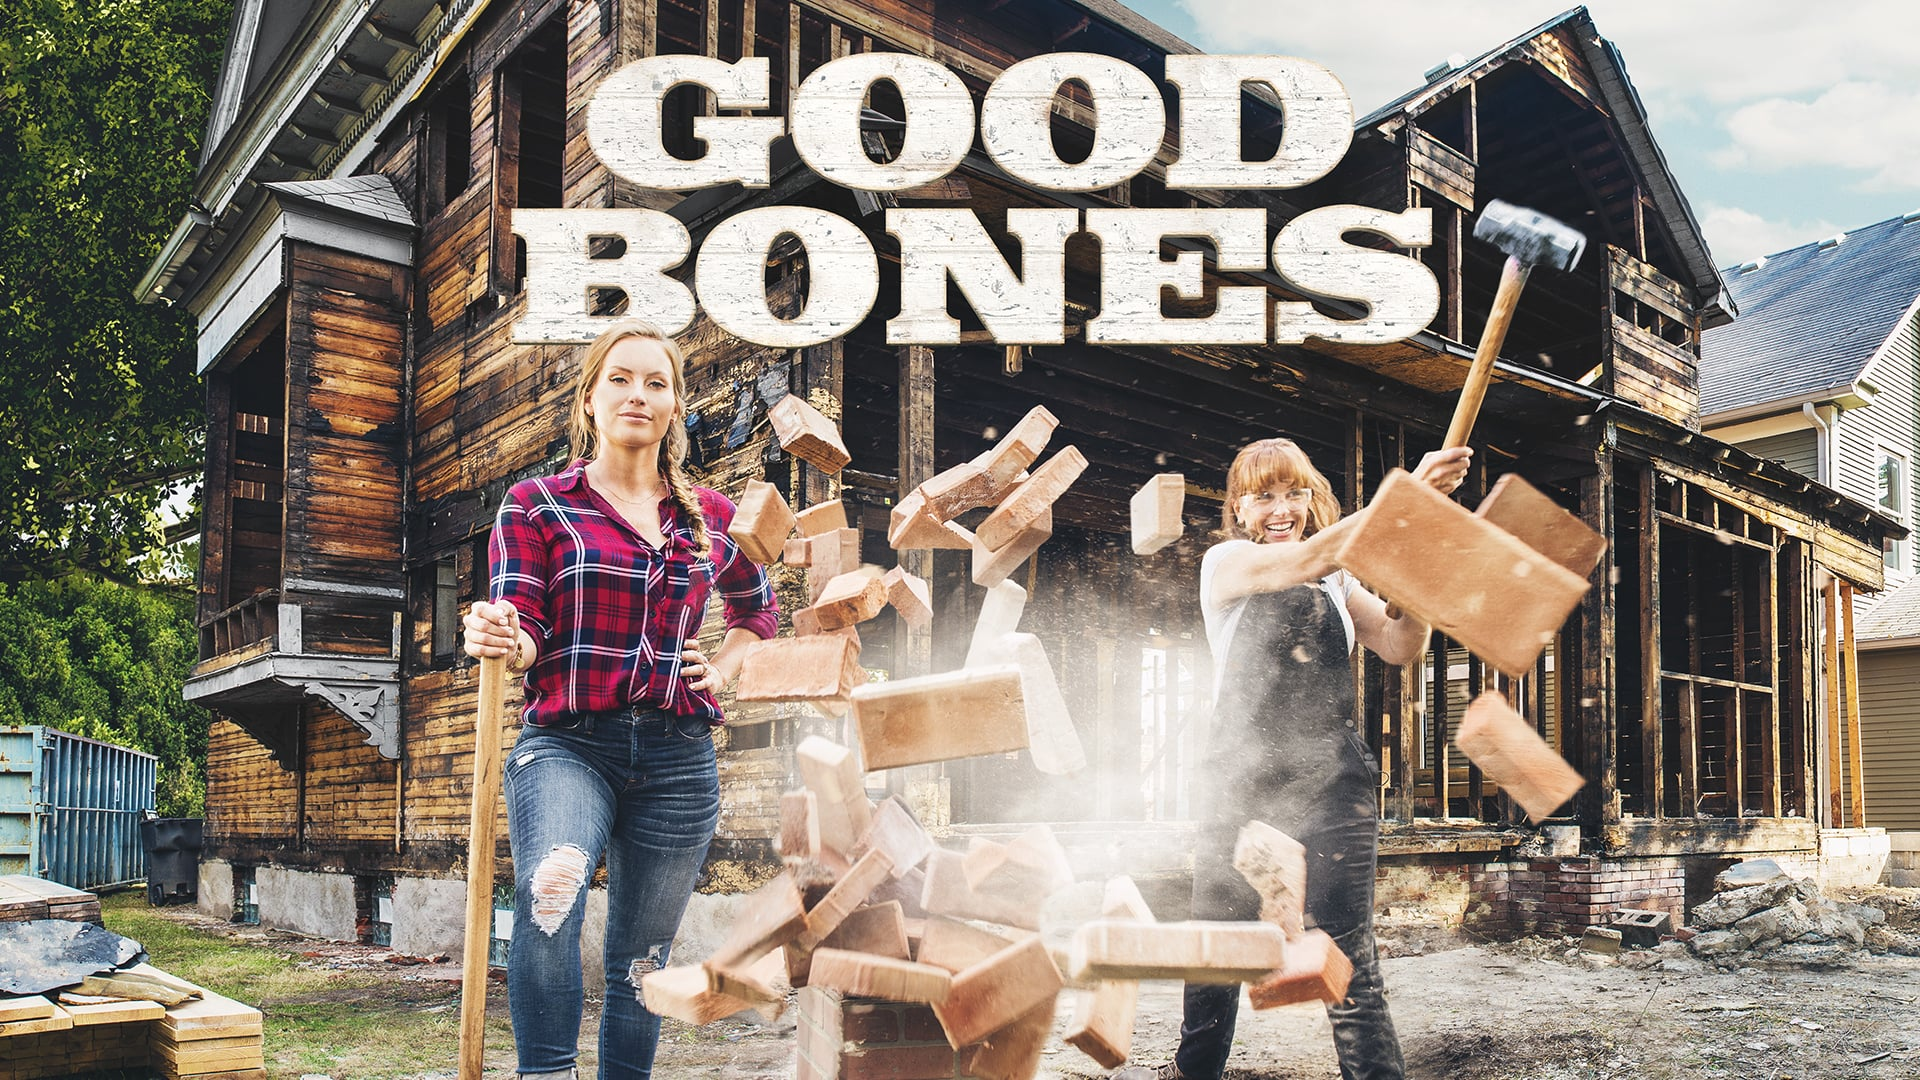 Good Bones Season 5 Episode 14